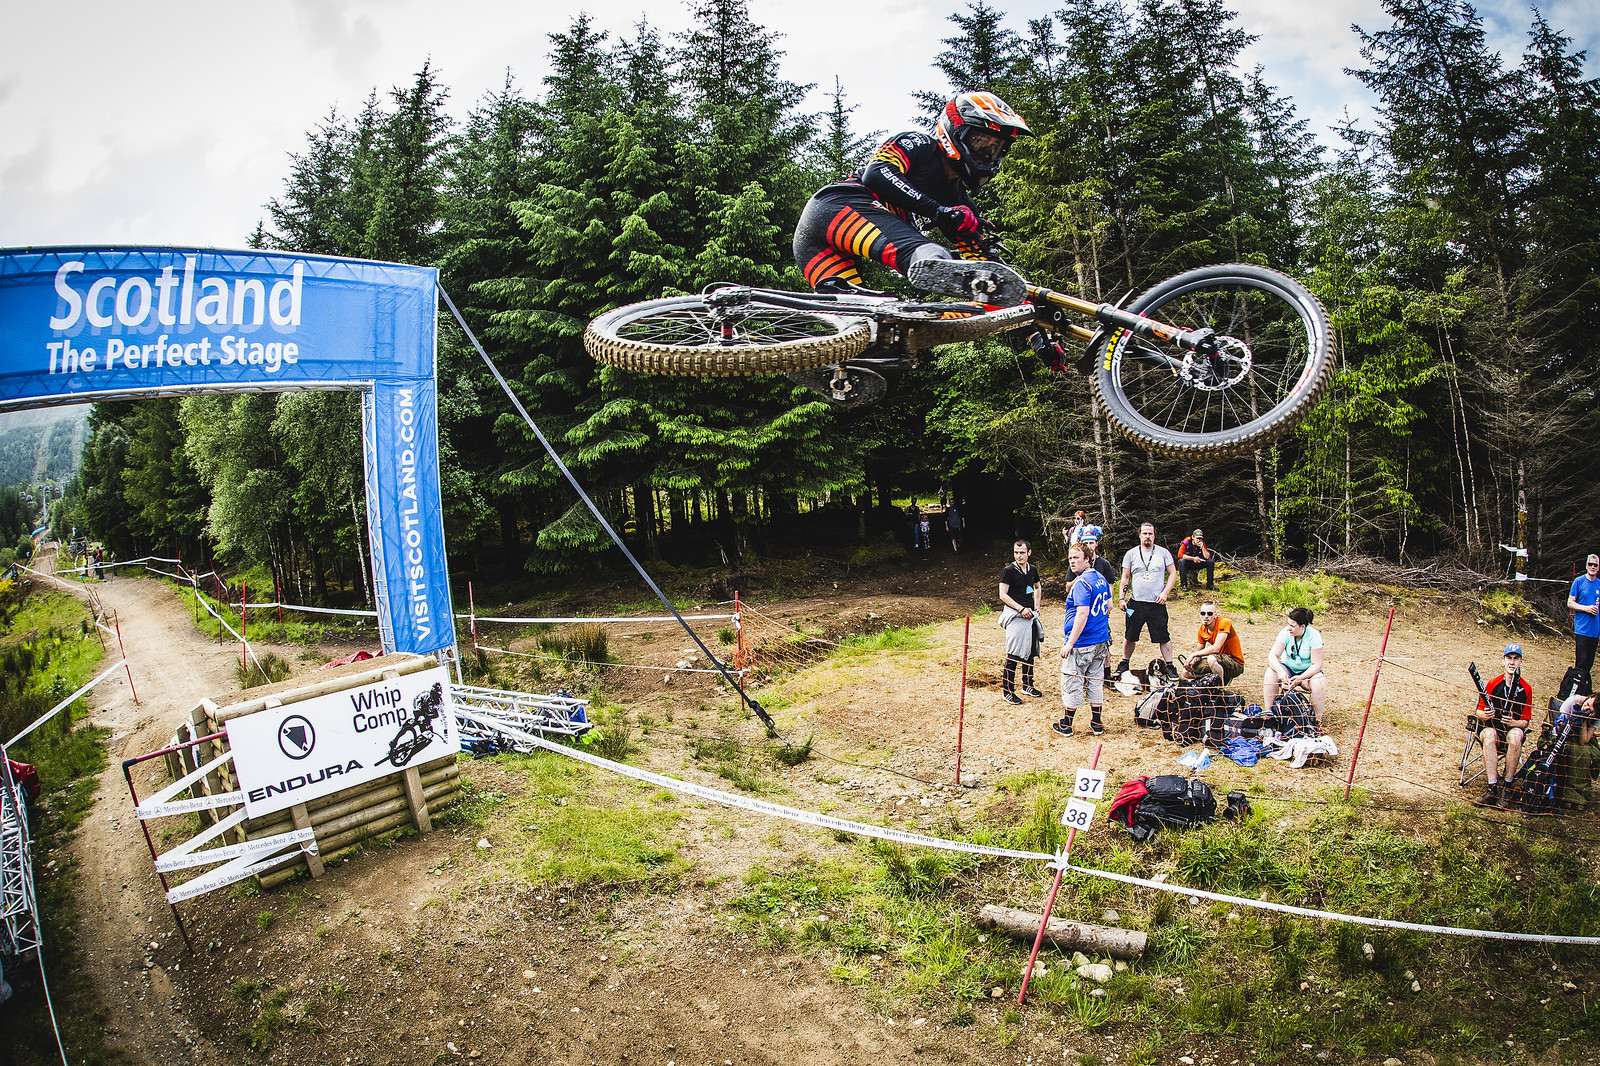 Marin - Fort William World Cup DH Whips - Mountain Biking Pictures - Vital MTB